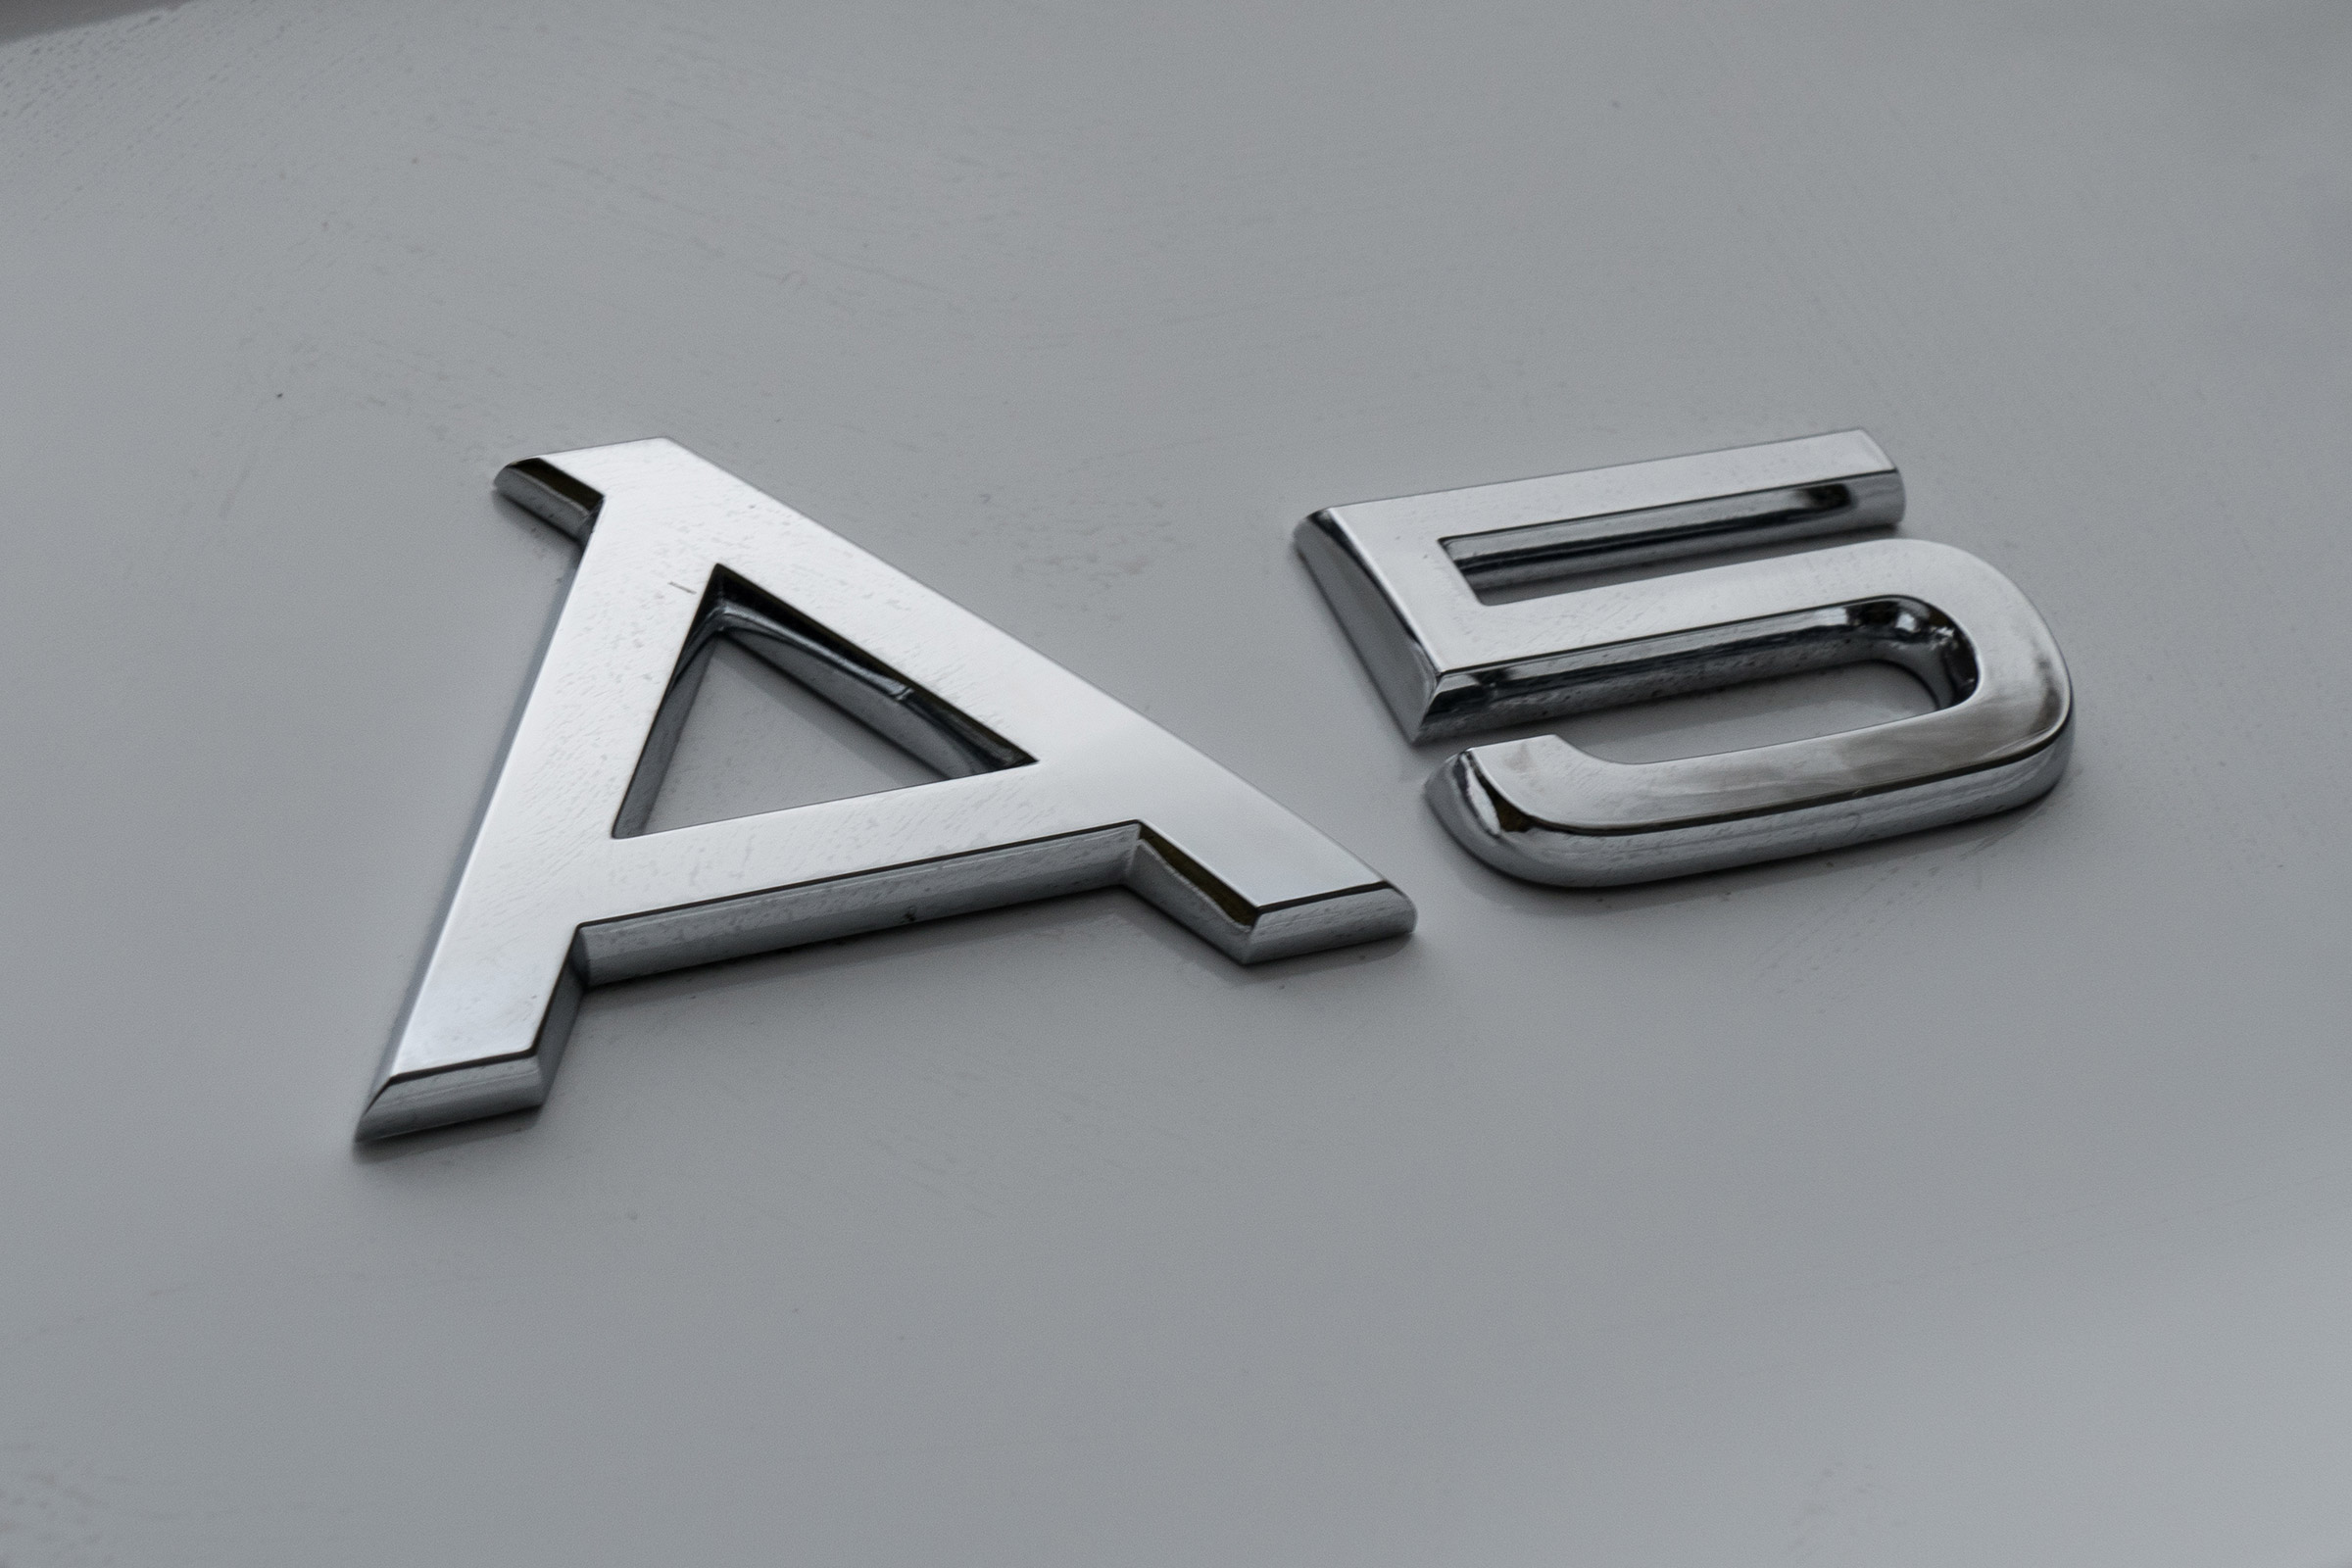 2017 Audi A5 Coupe Exterior View Rear Emblem (Photo 3 of 21)